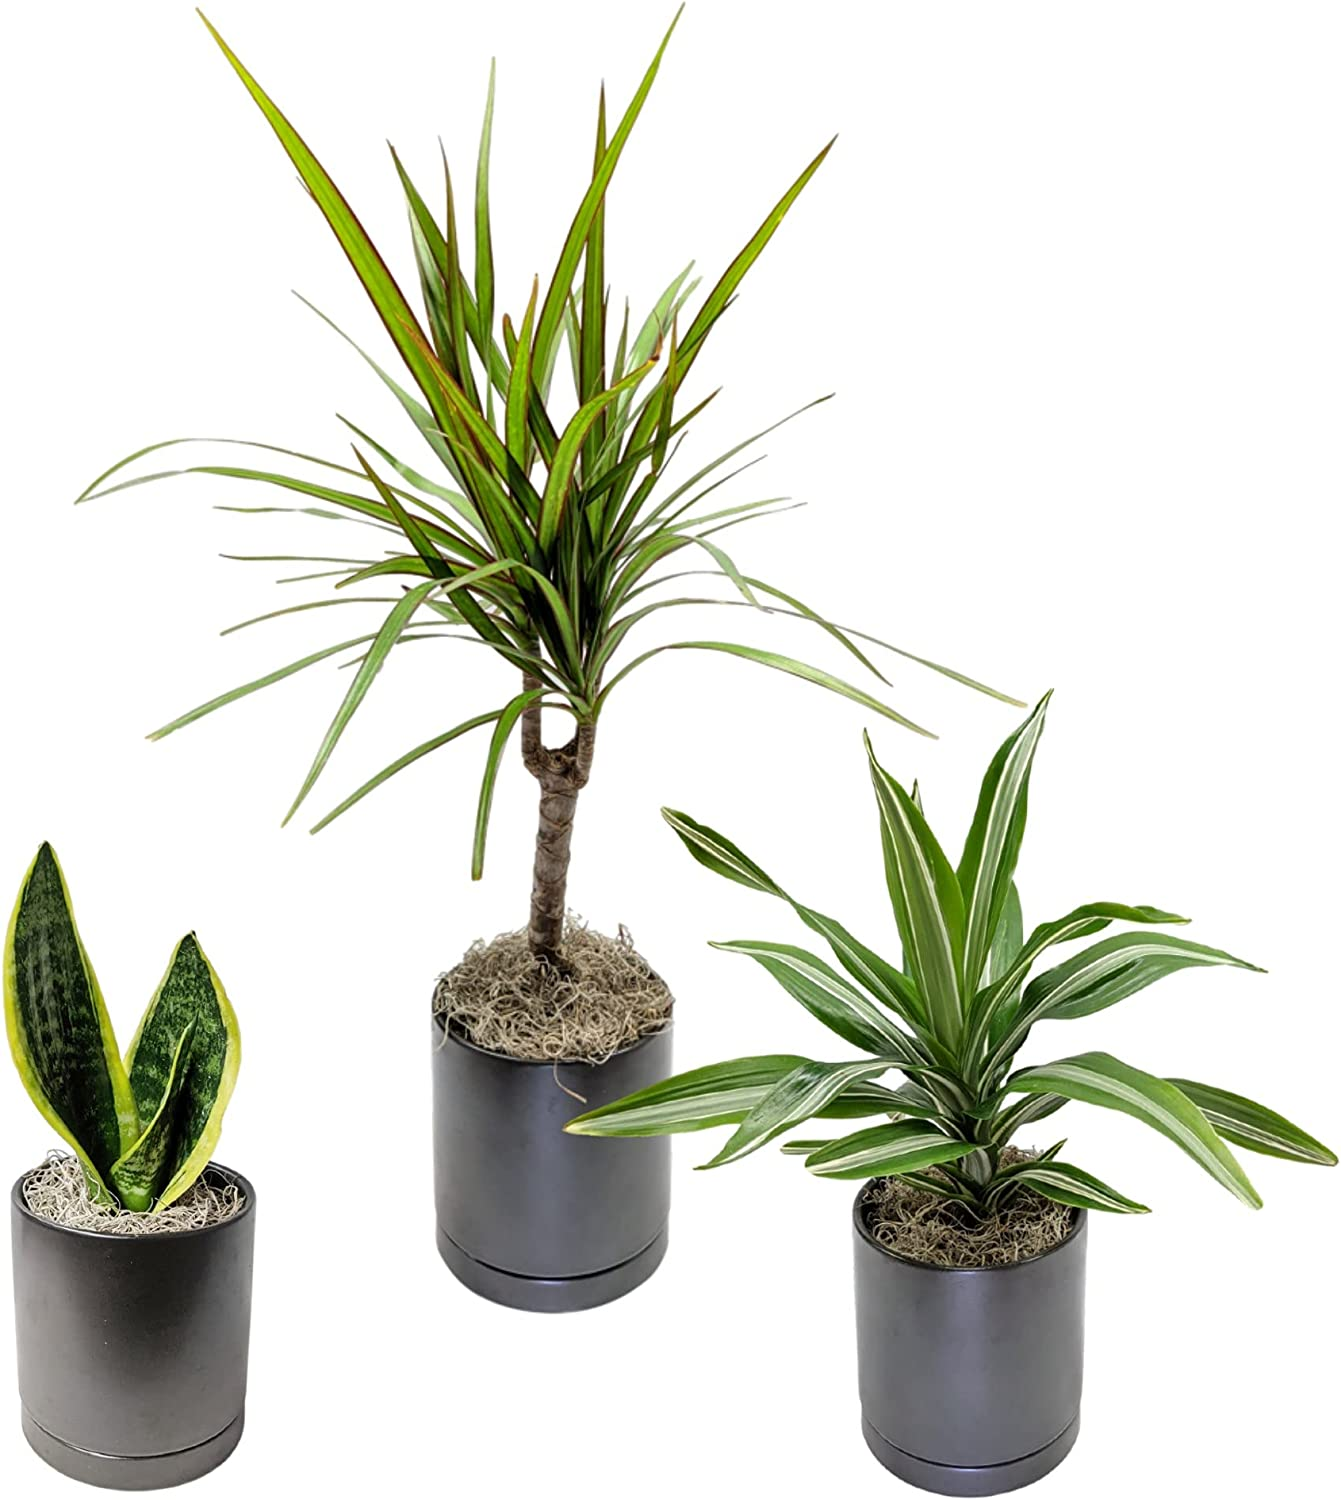 Clean Air half Houseplant Collection in Black Ceramic Pots Sauce with Recommendation